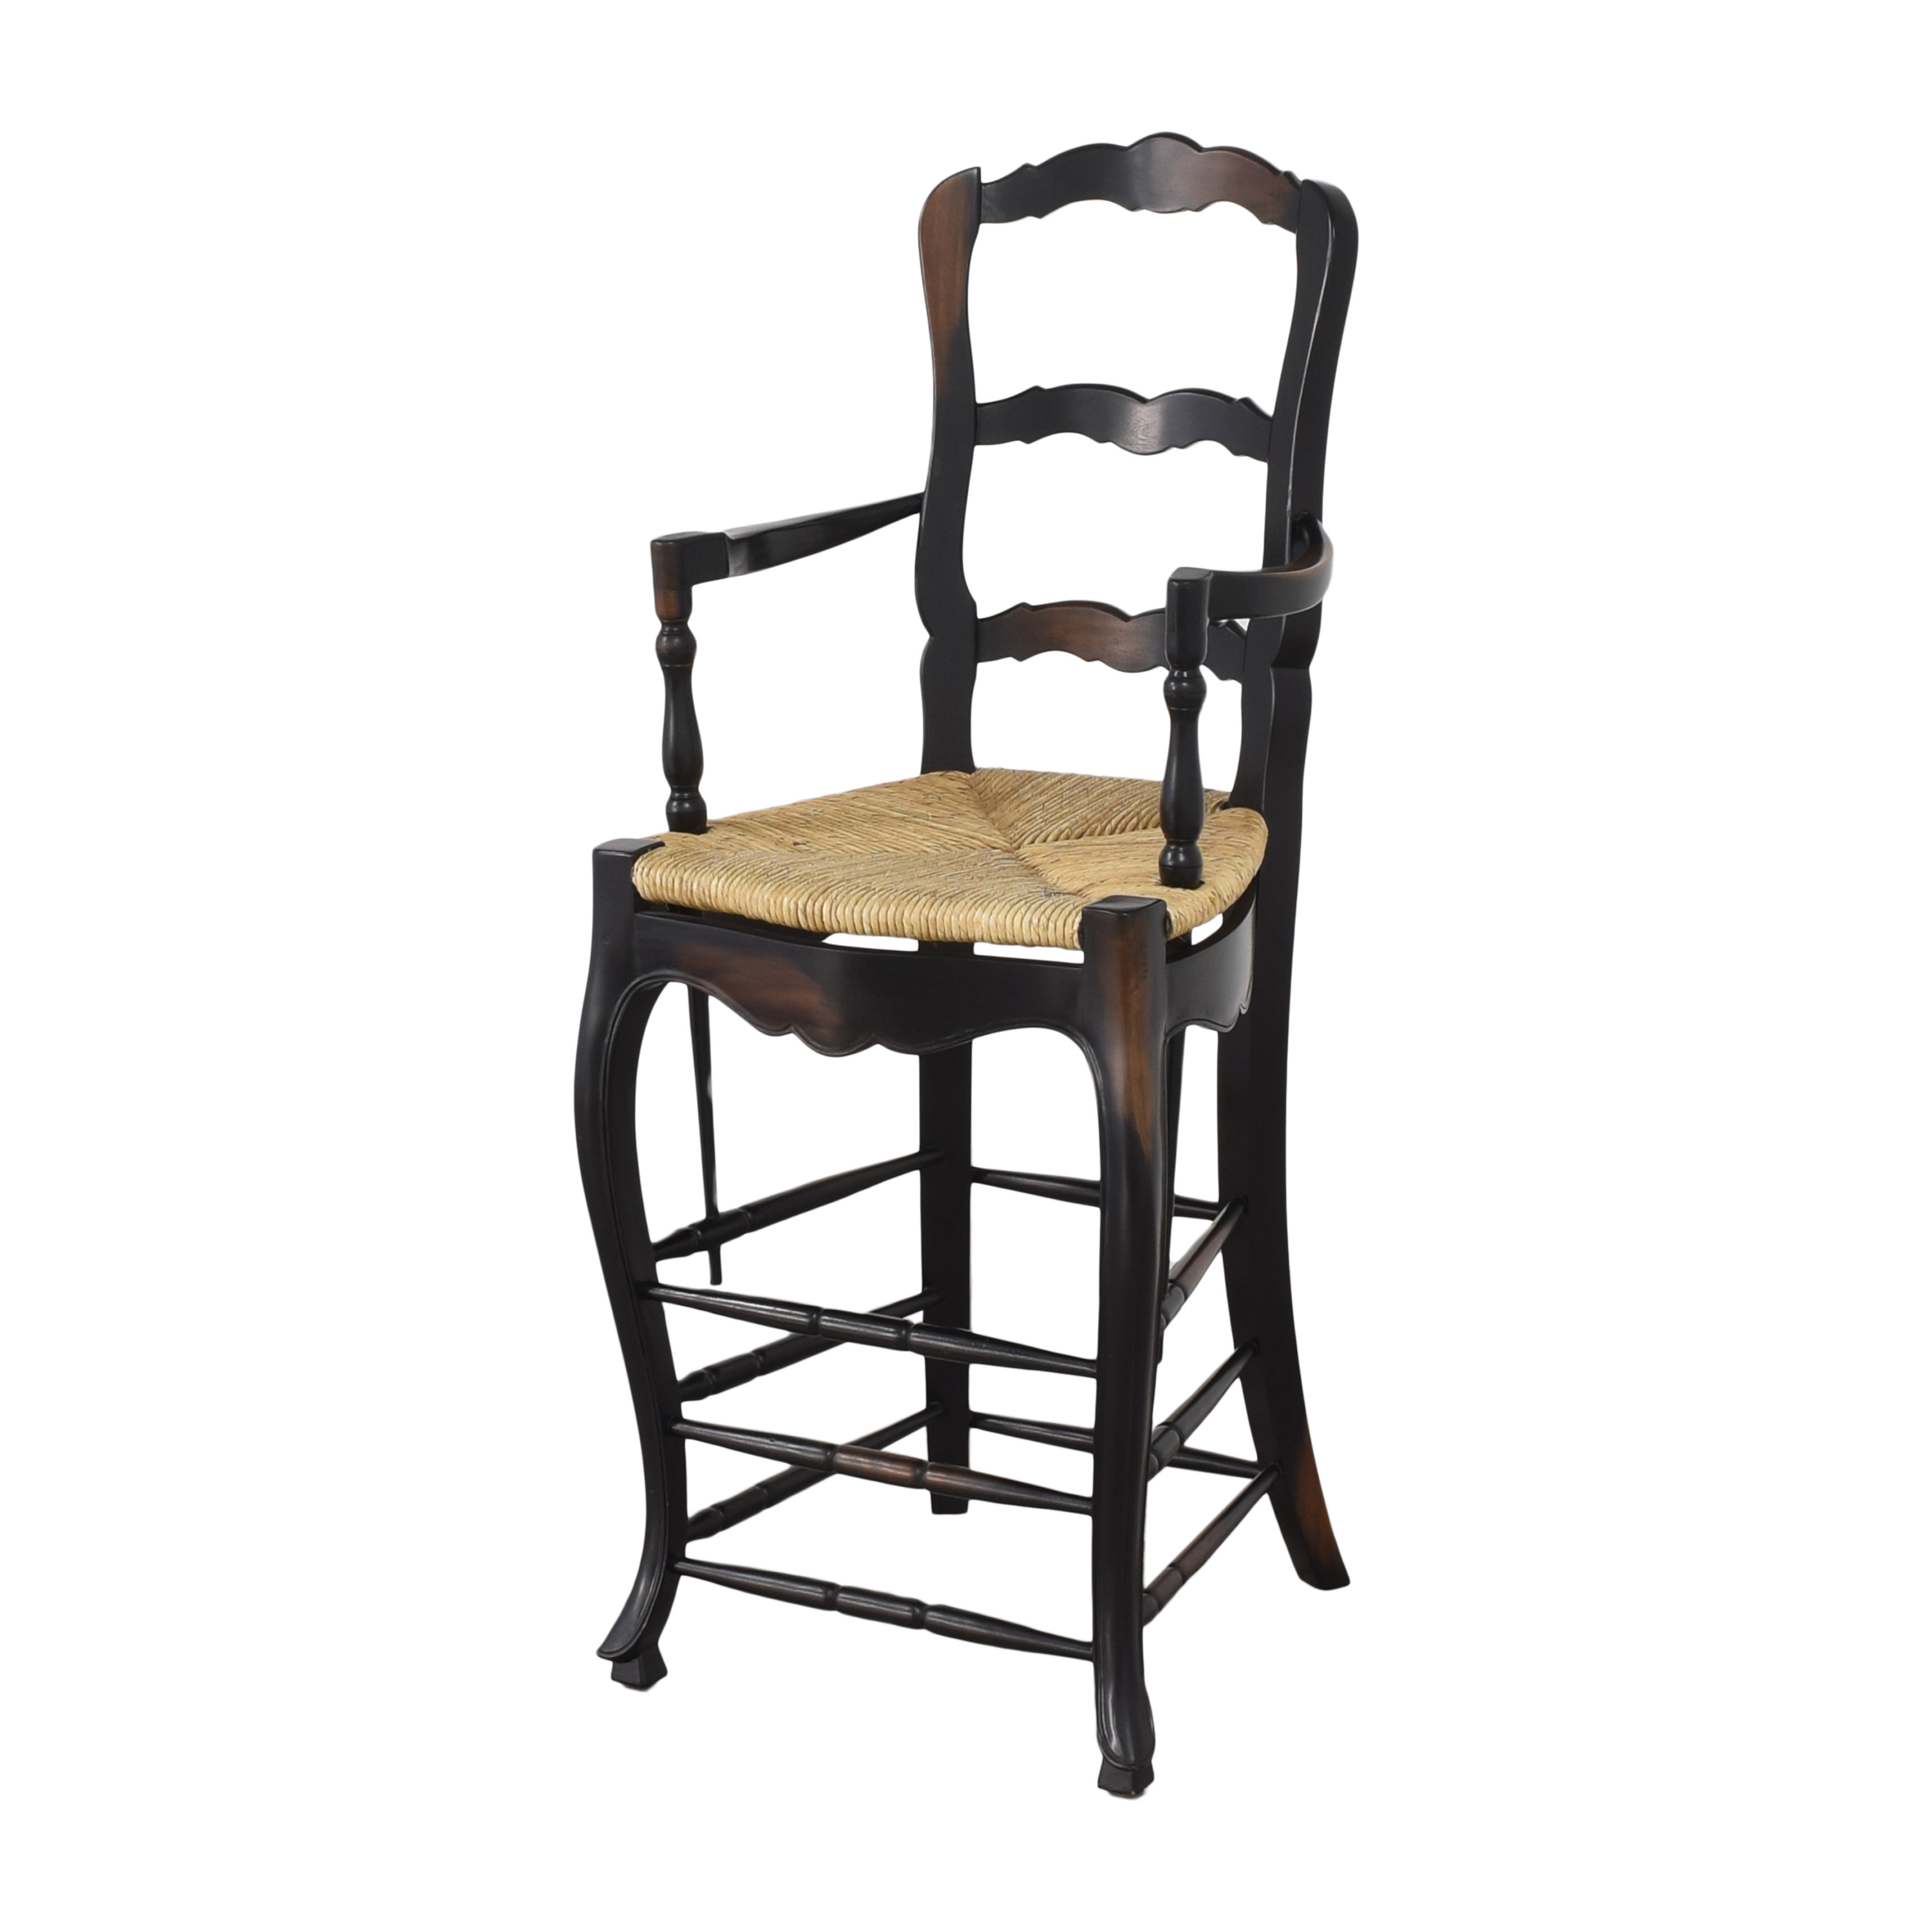 French Country Ladderback Stools / Chairs